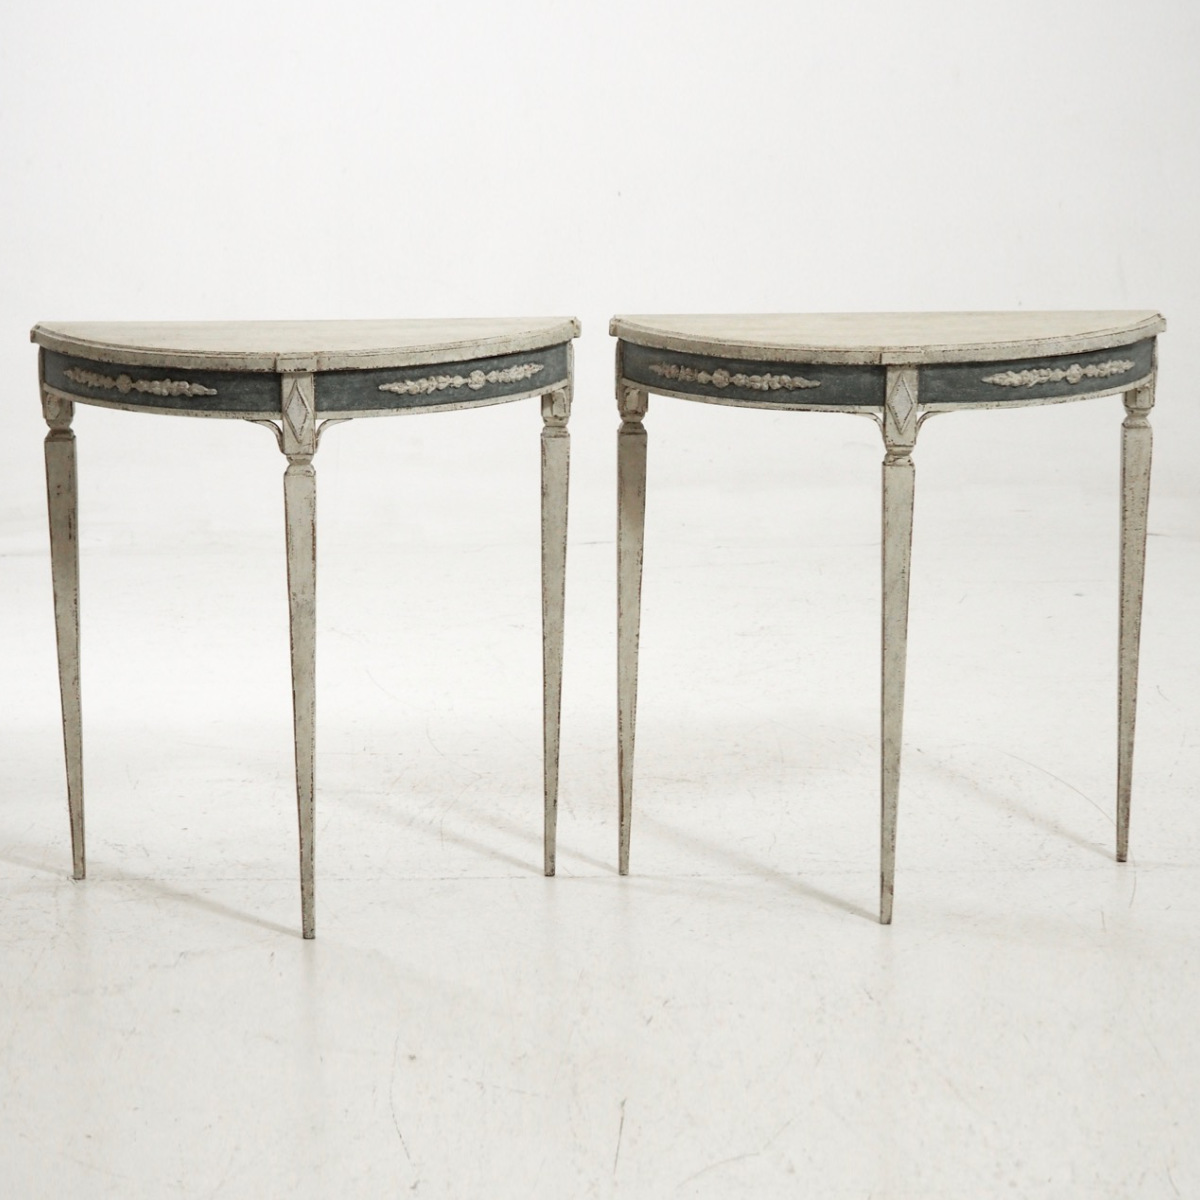 Swedish demi-lune tables, 19th C. - € 2.000